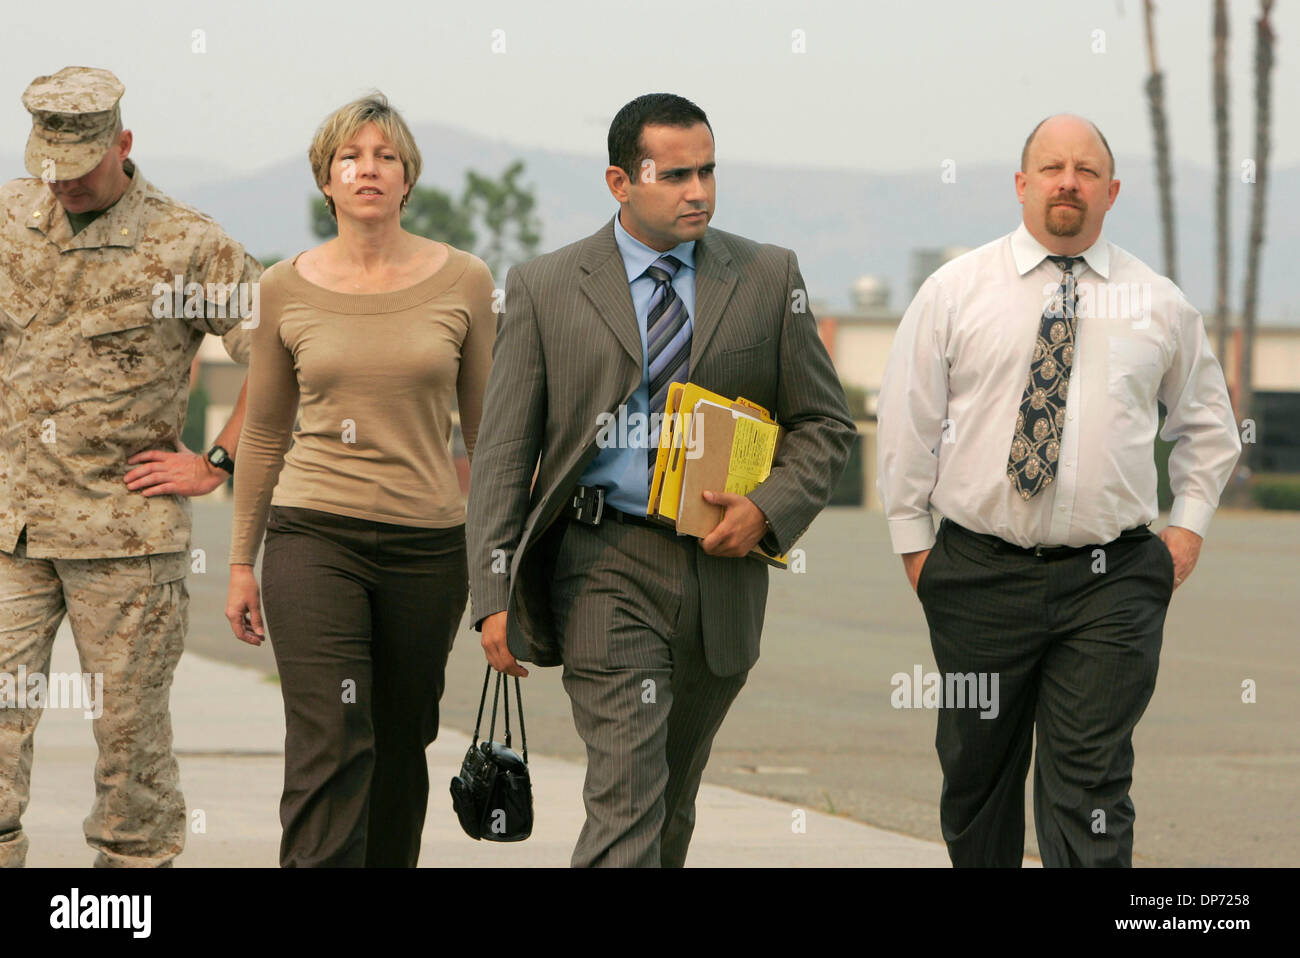 Oct 26, 2006; Camp Pendleton, CA, USA; After PFC John Jodka's court-martial his parents CAROLYN and JOHN JODKA walk with their son's civilian lawyer JOSEPH CASAS (dark coat), far right, to meet with the press. Marine at far left is Major JEFF NYHART of the base's Public Affairs office. Mandatory Credit: Photo by Charlie Neuman/SDU-T/ZUMA Press. (©) Copyright 2006 by SDU-T - Stock Image